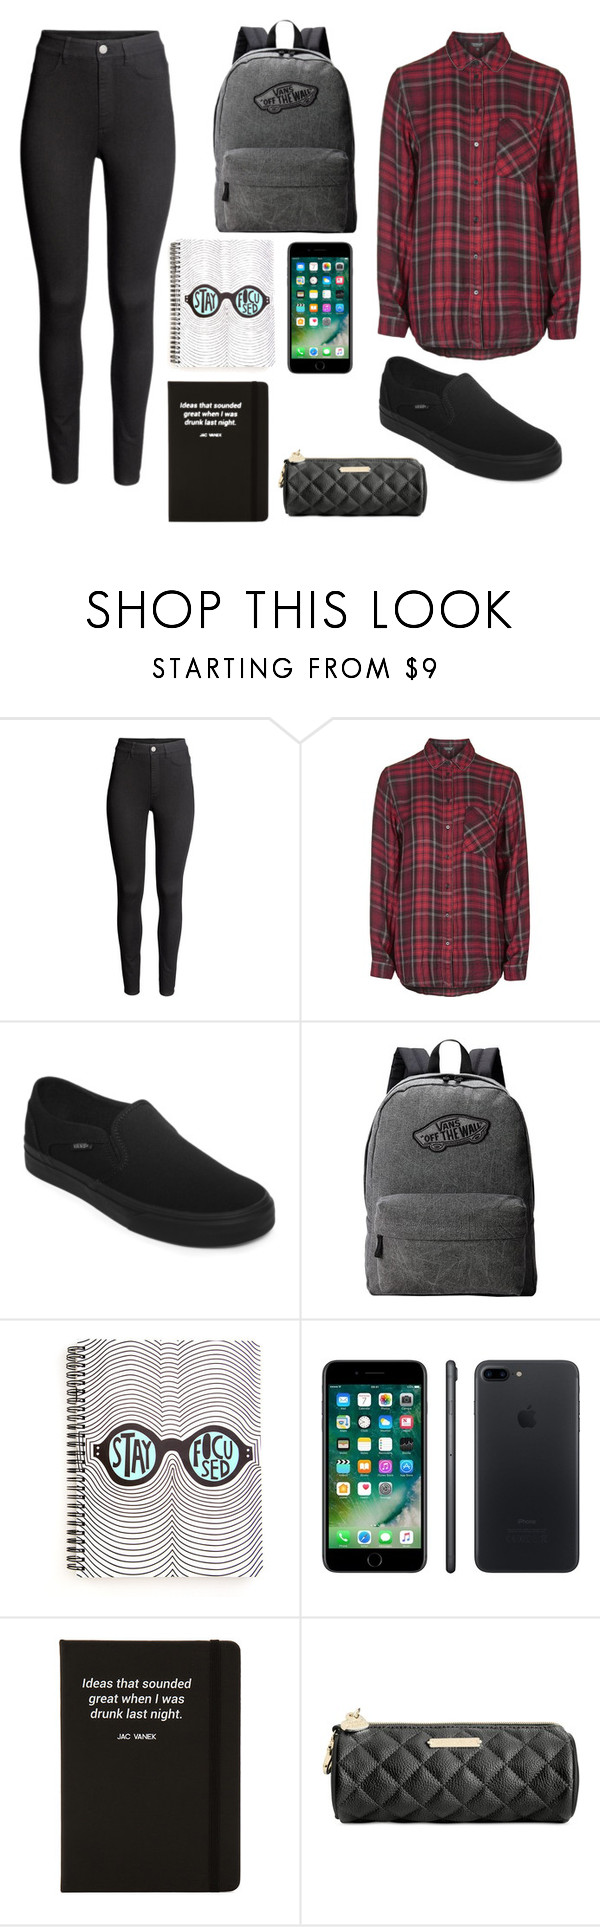 """School #20"" by marvel1 ❤ liked on Polyvore featuring H&M, Topshop, Vans, Apple, Jac Vanek and Betsey Johnson"